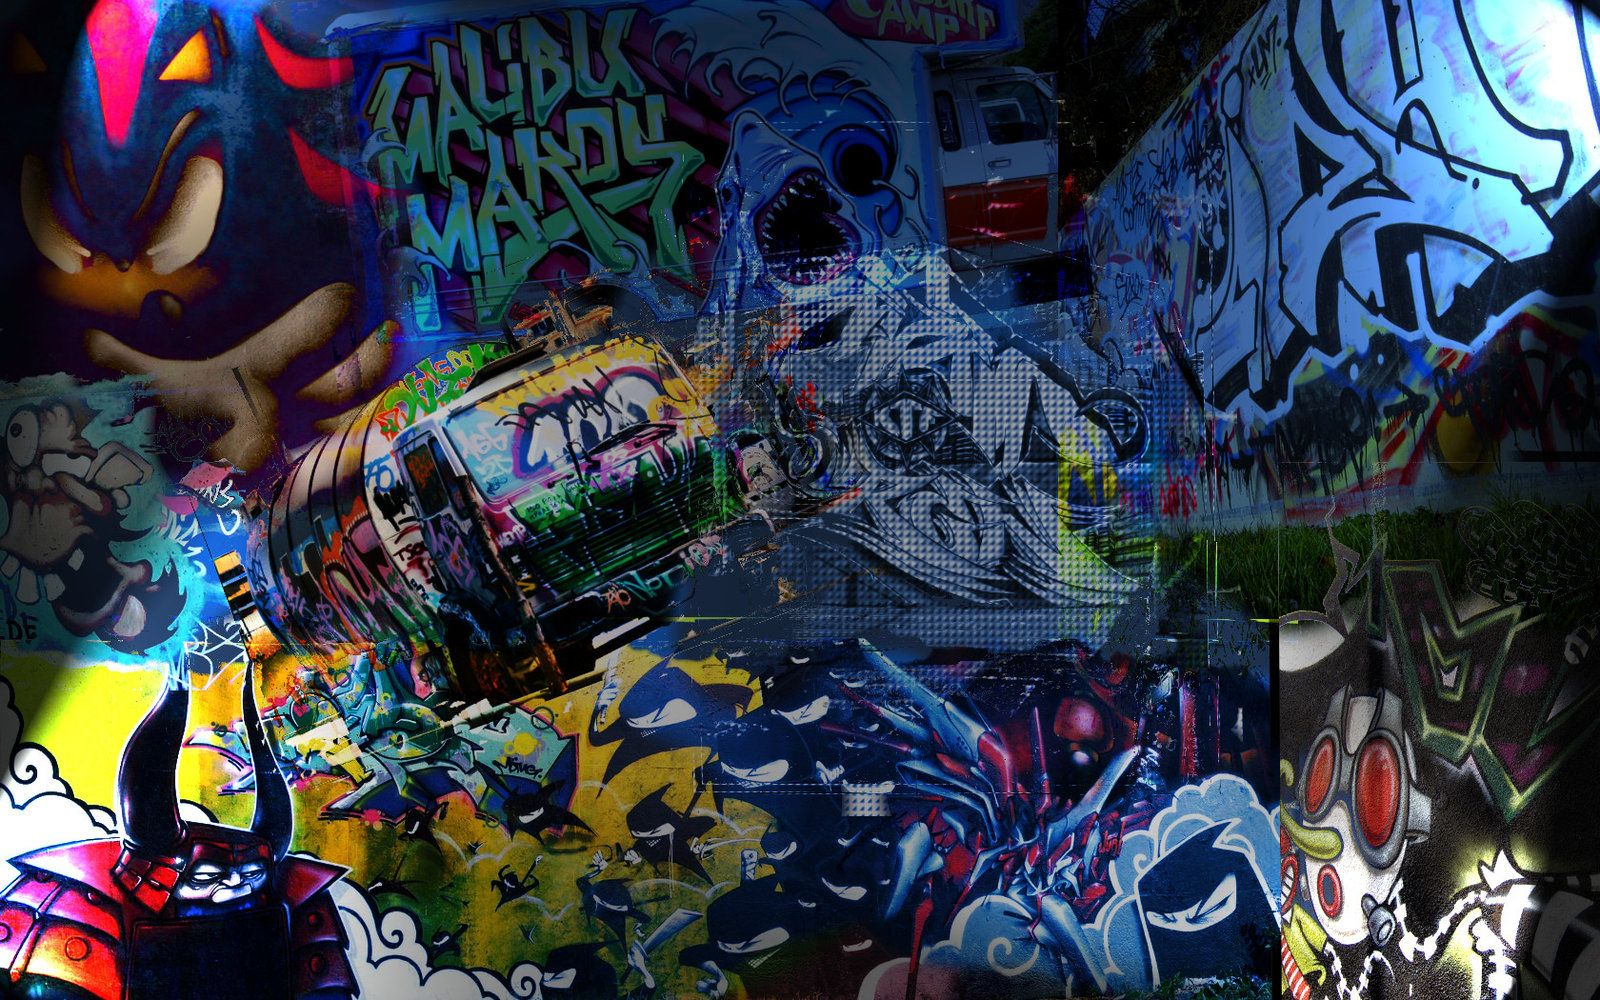 Free graffiti wallpapers hd desktop ideas for the house free graffiti wallpapers hd desktop voltagebd Image collections